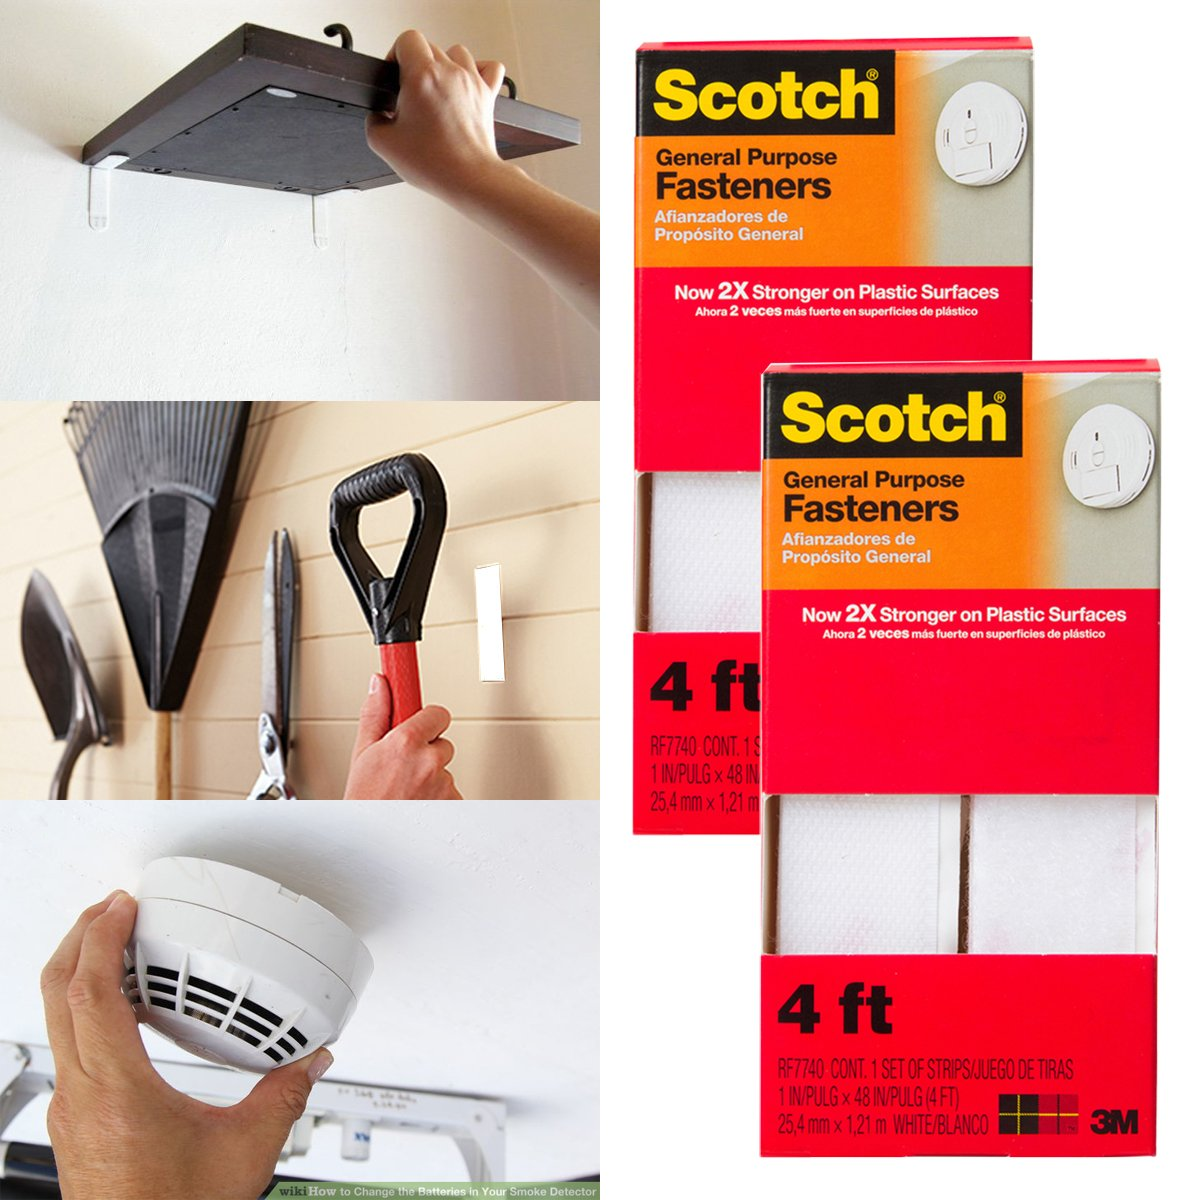 Amazon.com : 2pk 3M Scotch Permanent General Purpose 4ft Fasteners Outdoor Indoor Mounting Strips Tape : Office Products